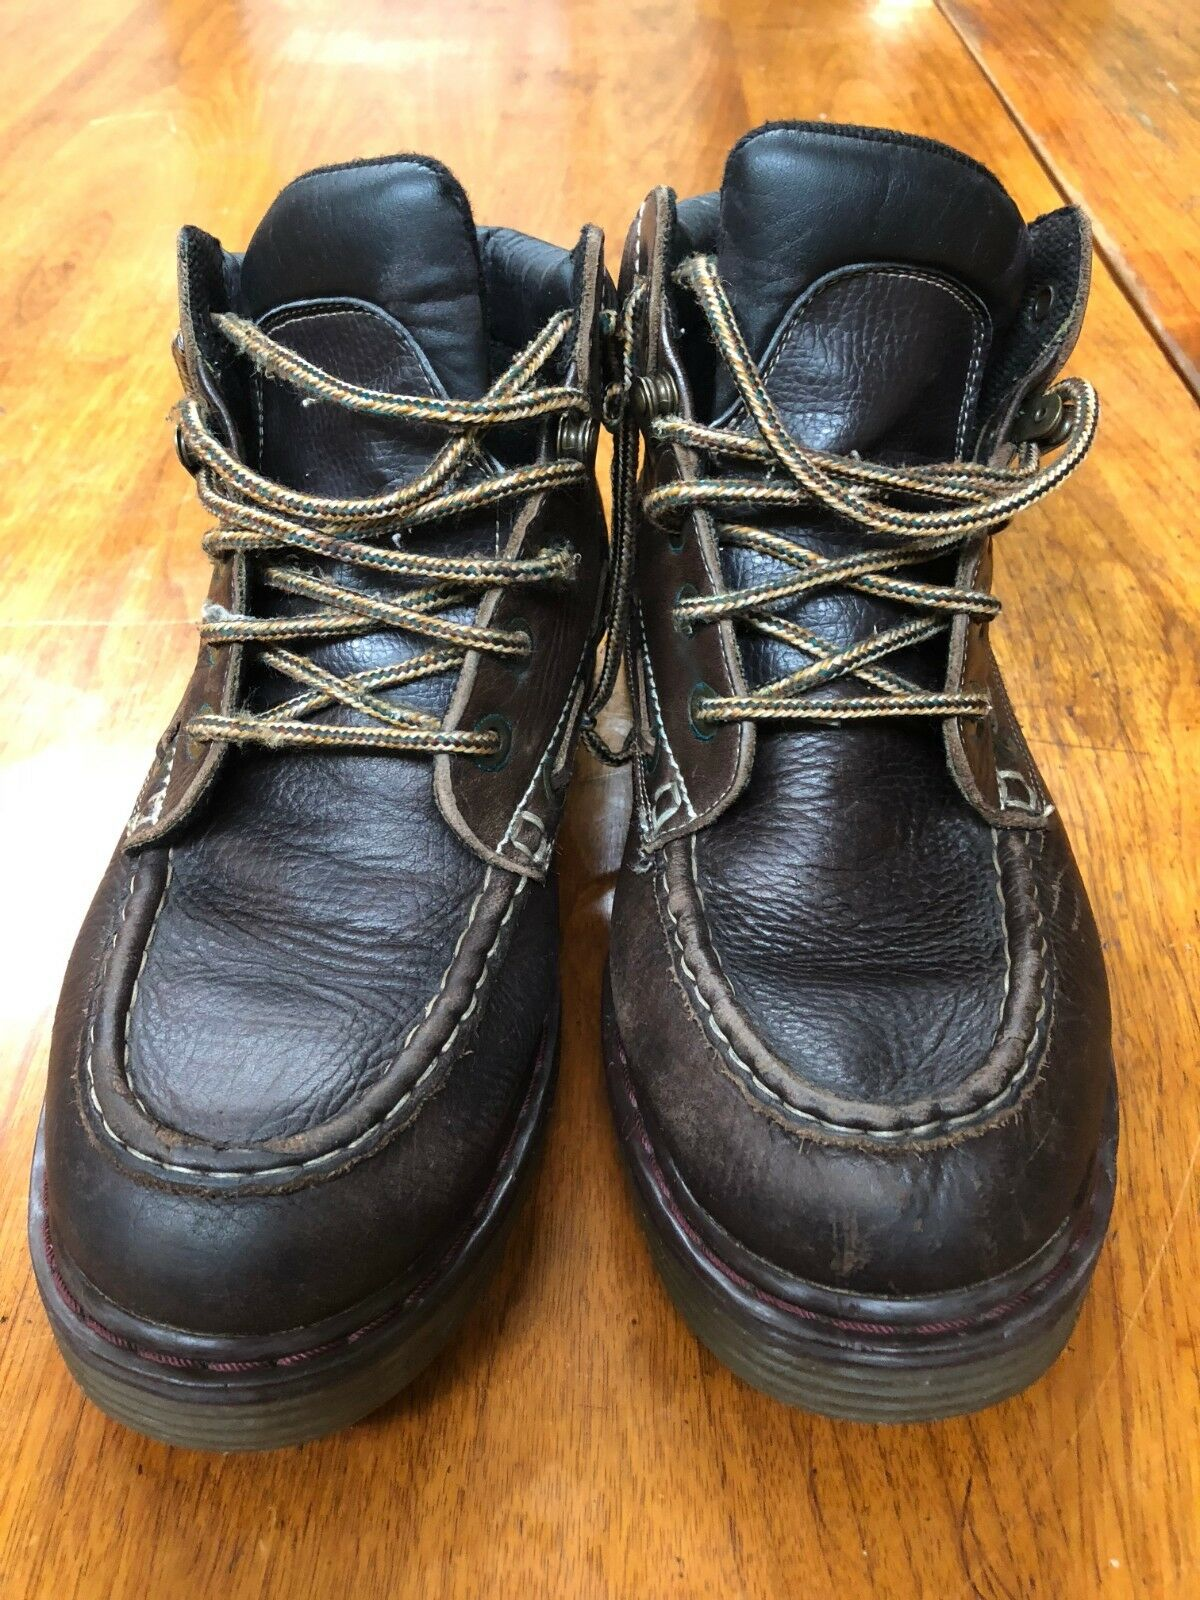 Arizona Jean Company Mens Brown Leather Ankle Hiking Boots Size 9.5 M